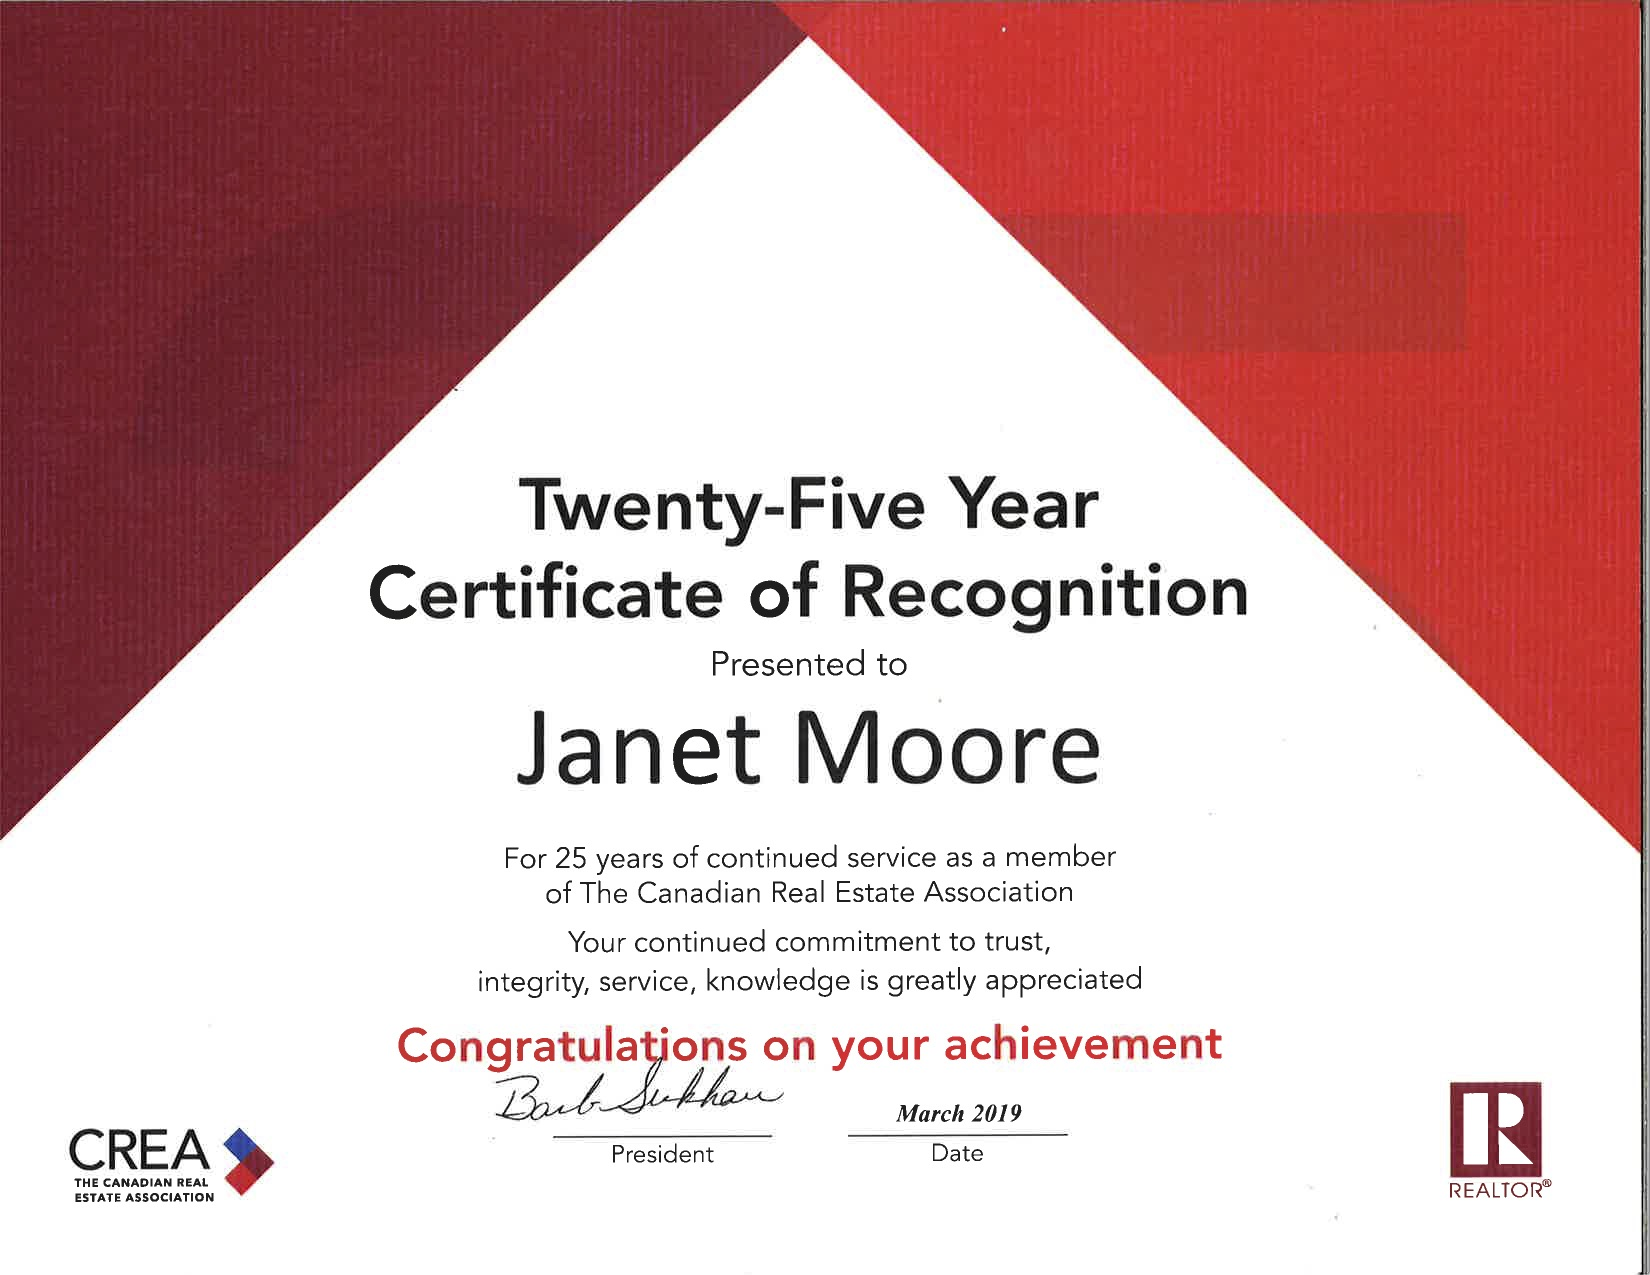 Janet Moore 25 year certificate of recognition from CREA